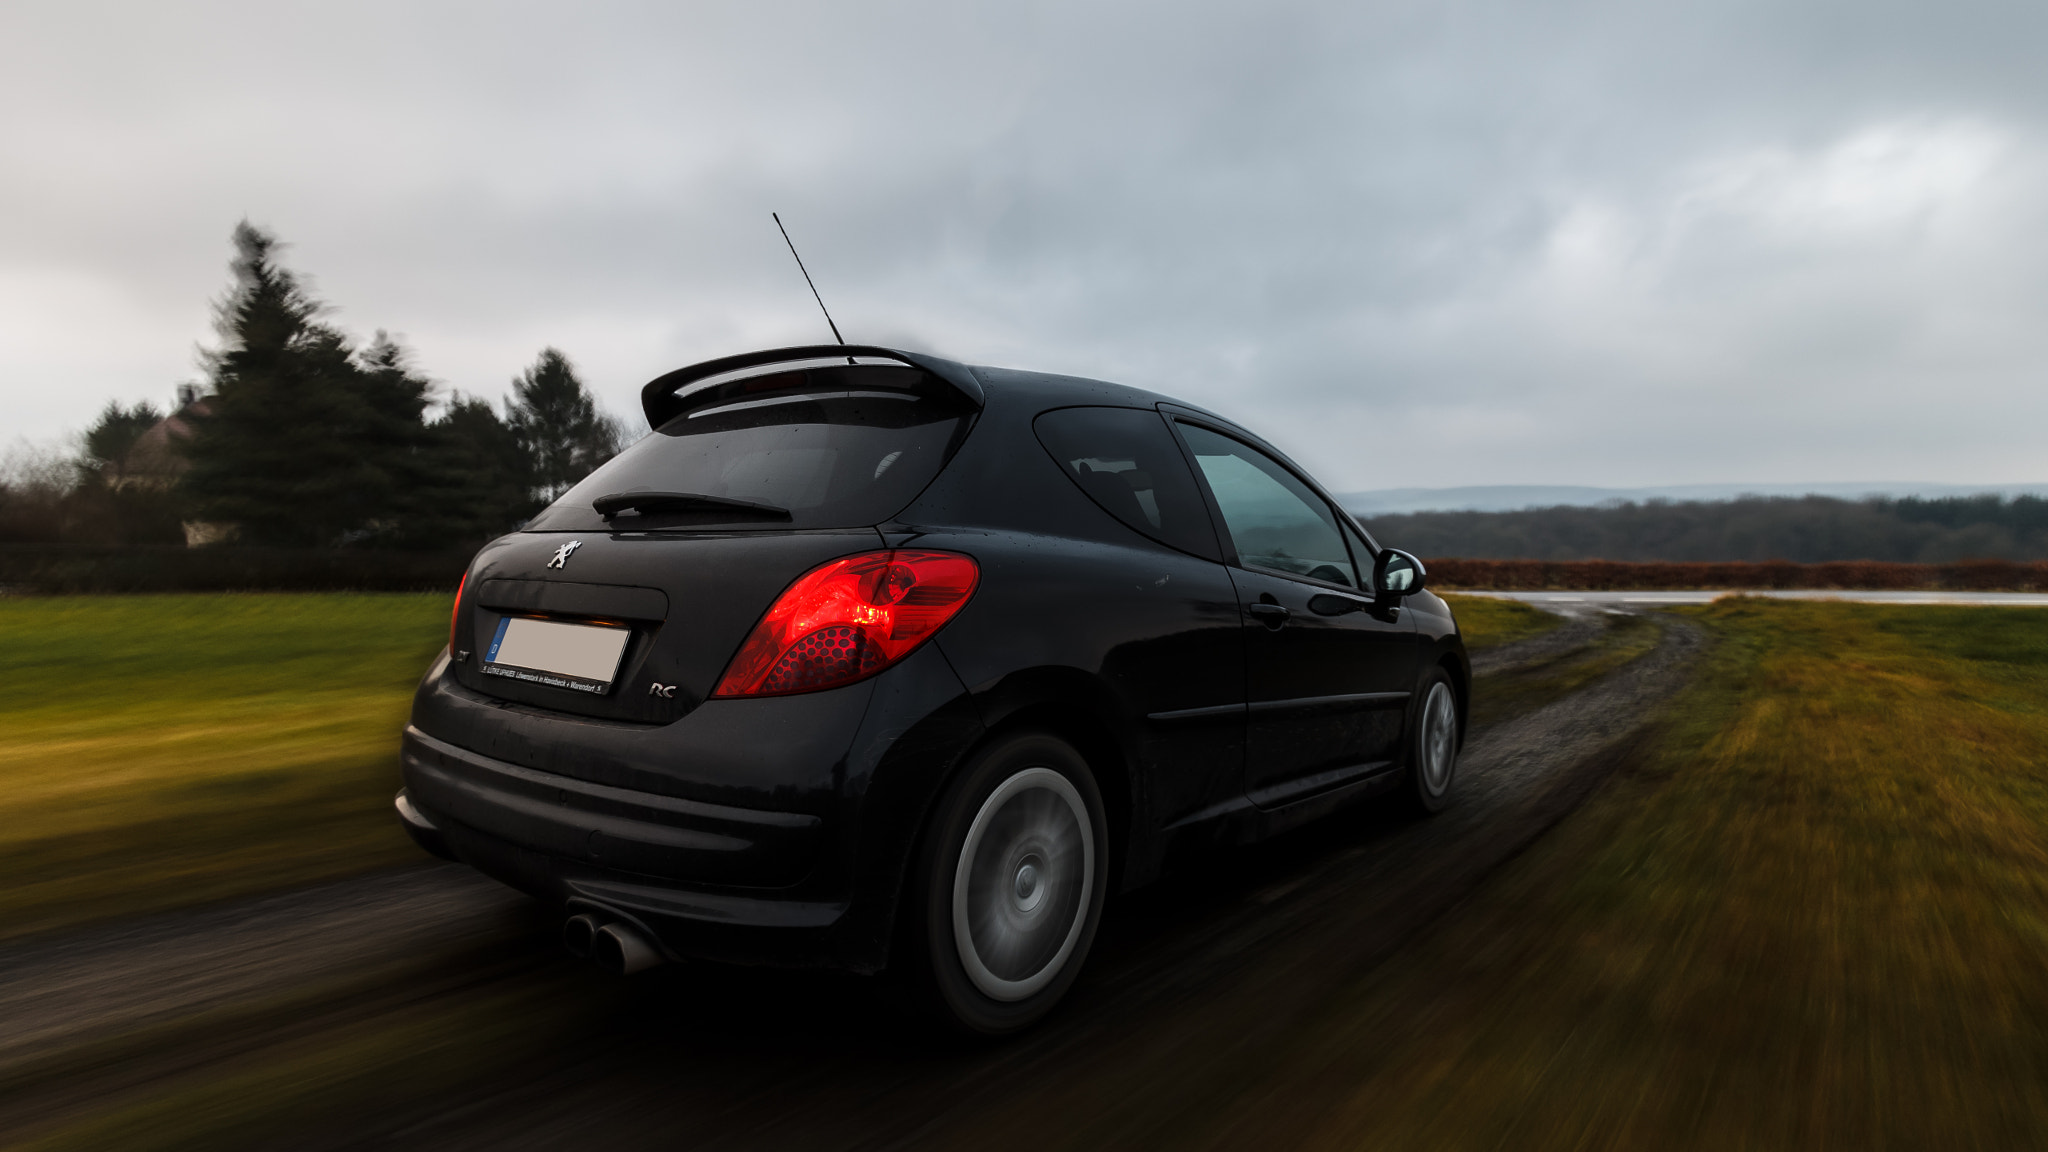 Photograph Peugeot 207 RC - Rig-Shot by Robin Glück on 500px